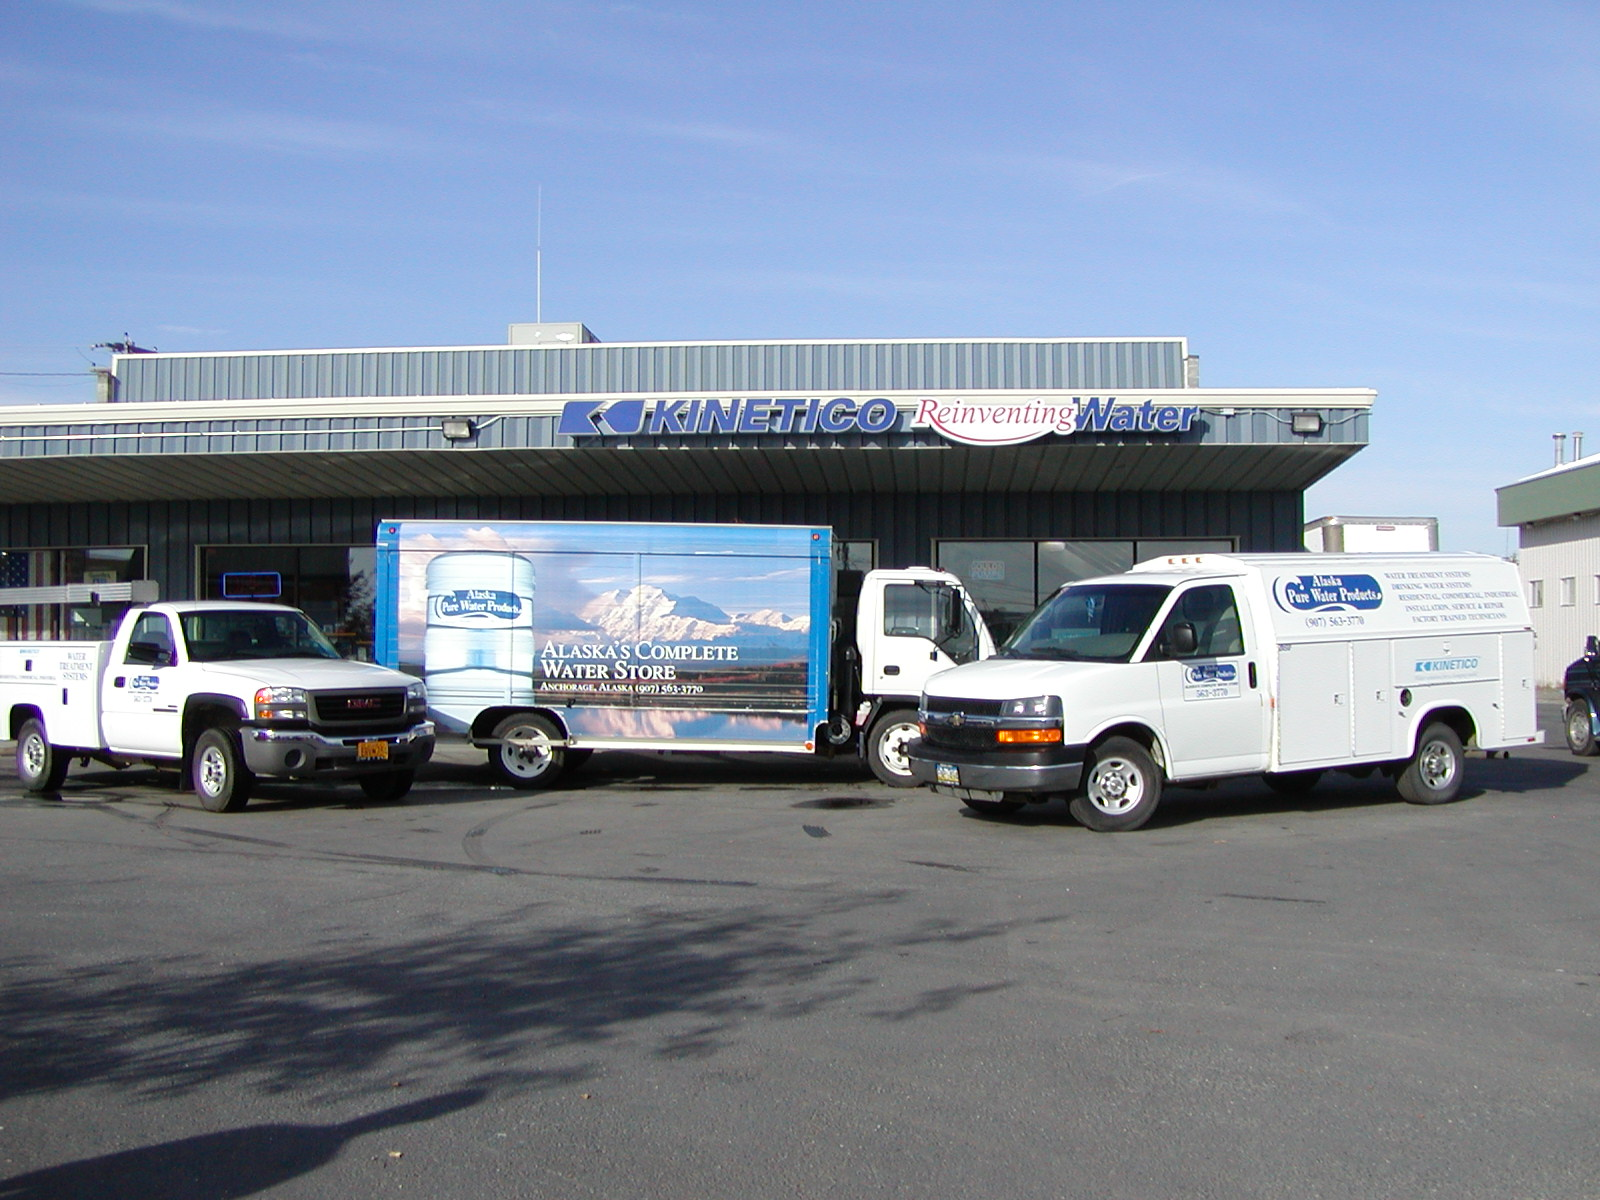 Alaska Pure Water Products 301 East International Airport Rd Anchorage 99518 Phone 907 563 3770 Fax 5502